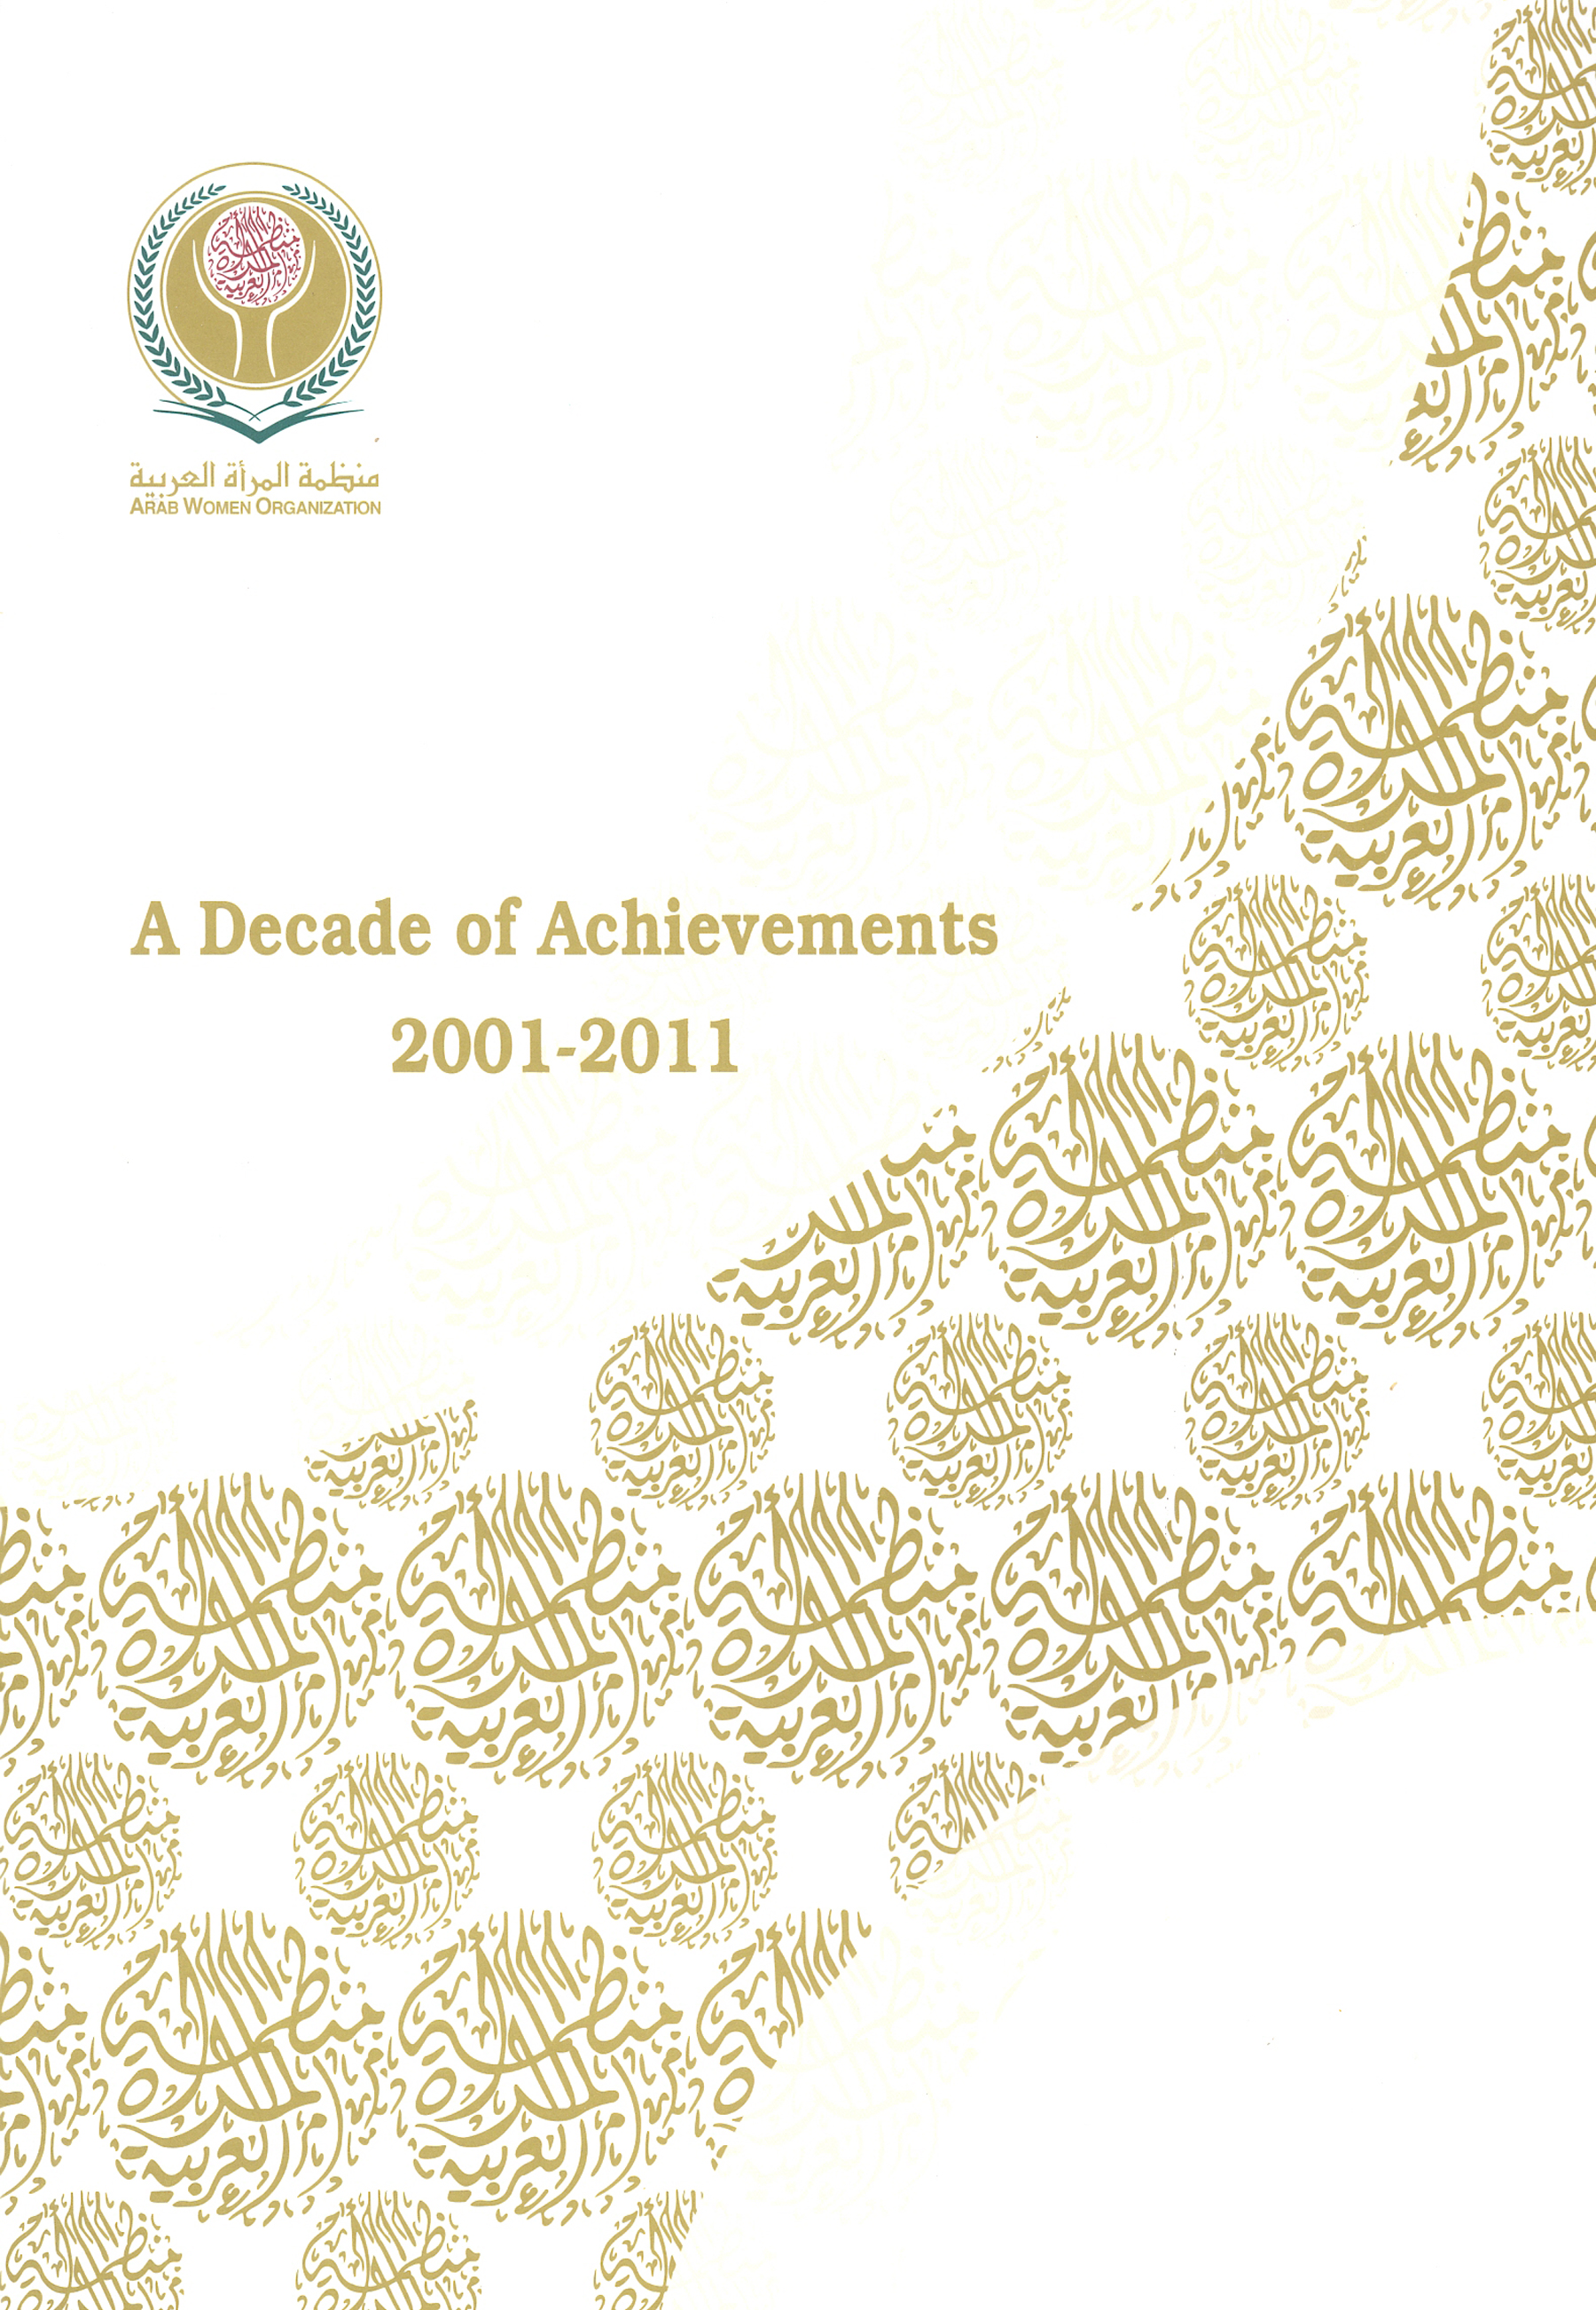 (A Decade of Achievements (2001-2011